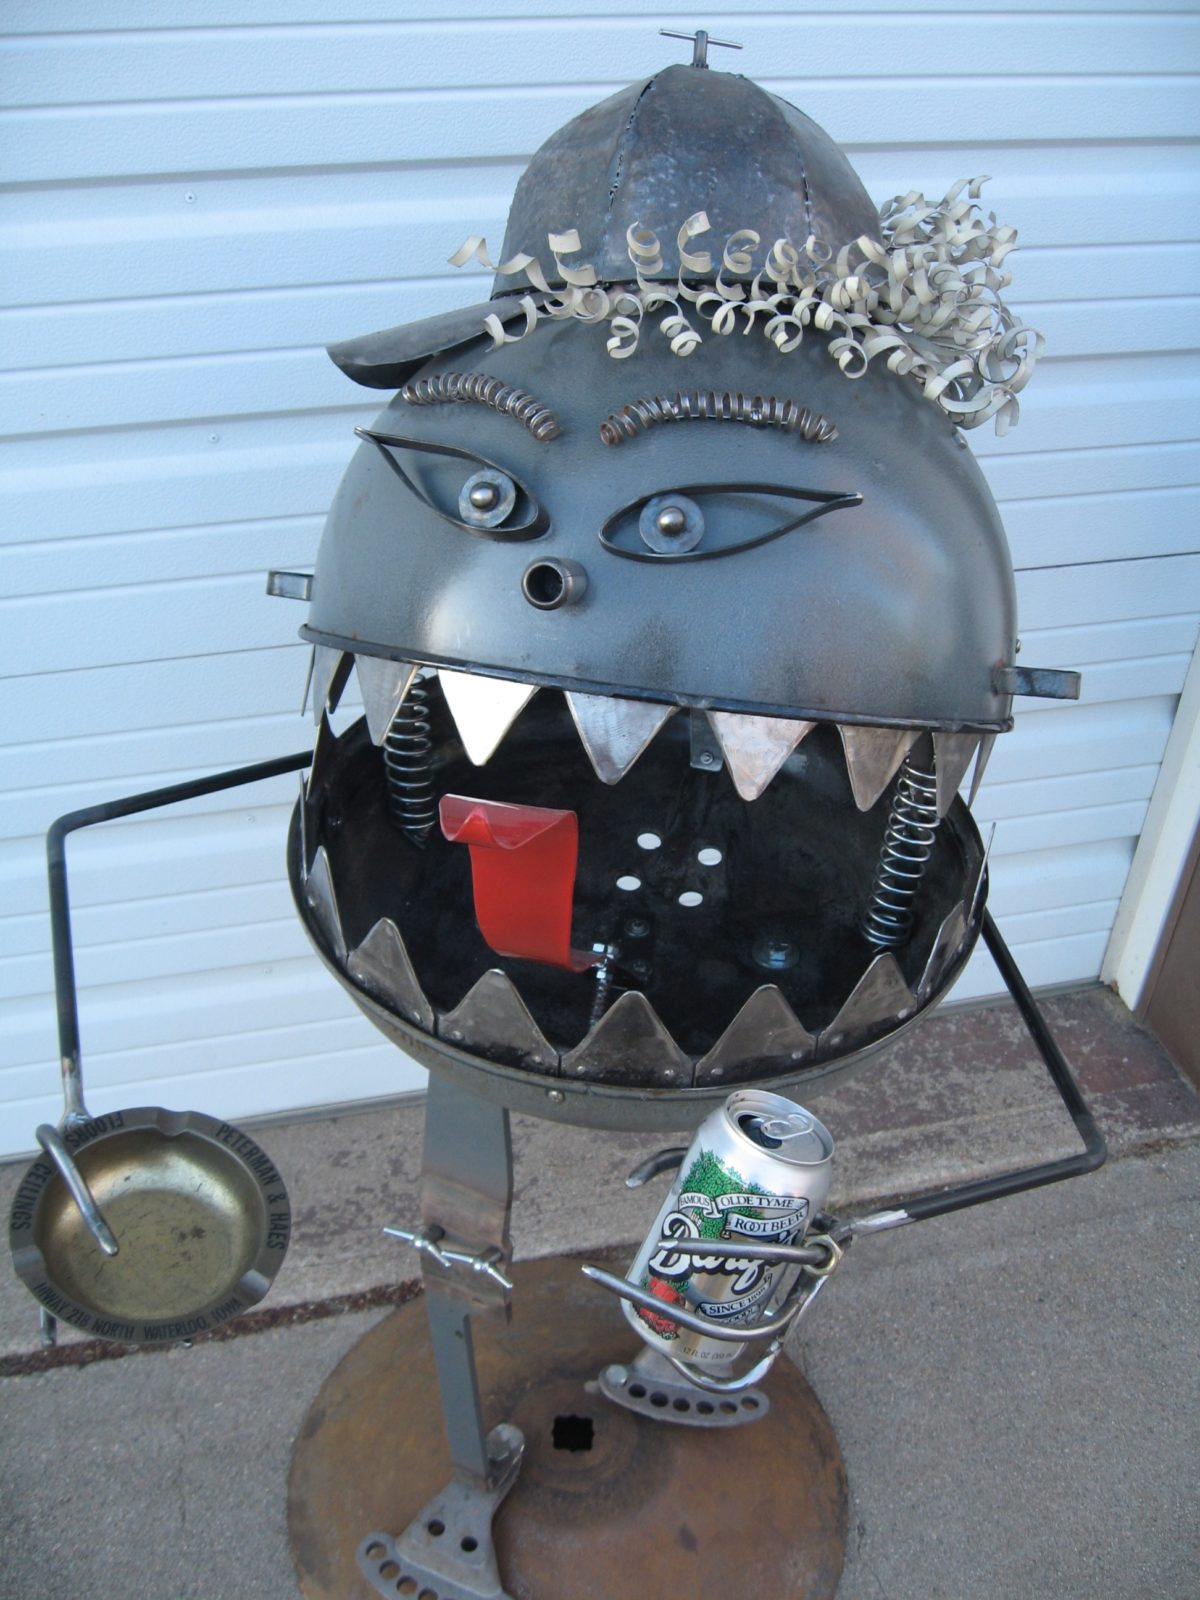 Micky Grilly, The Grill Monster metal sculpture